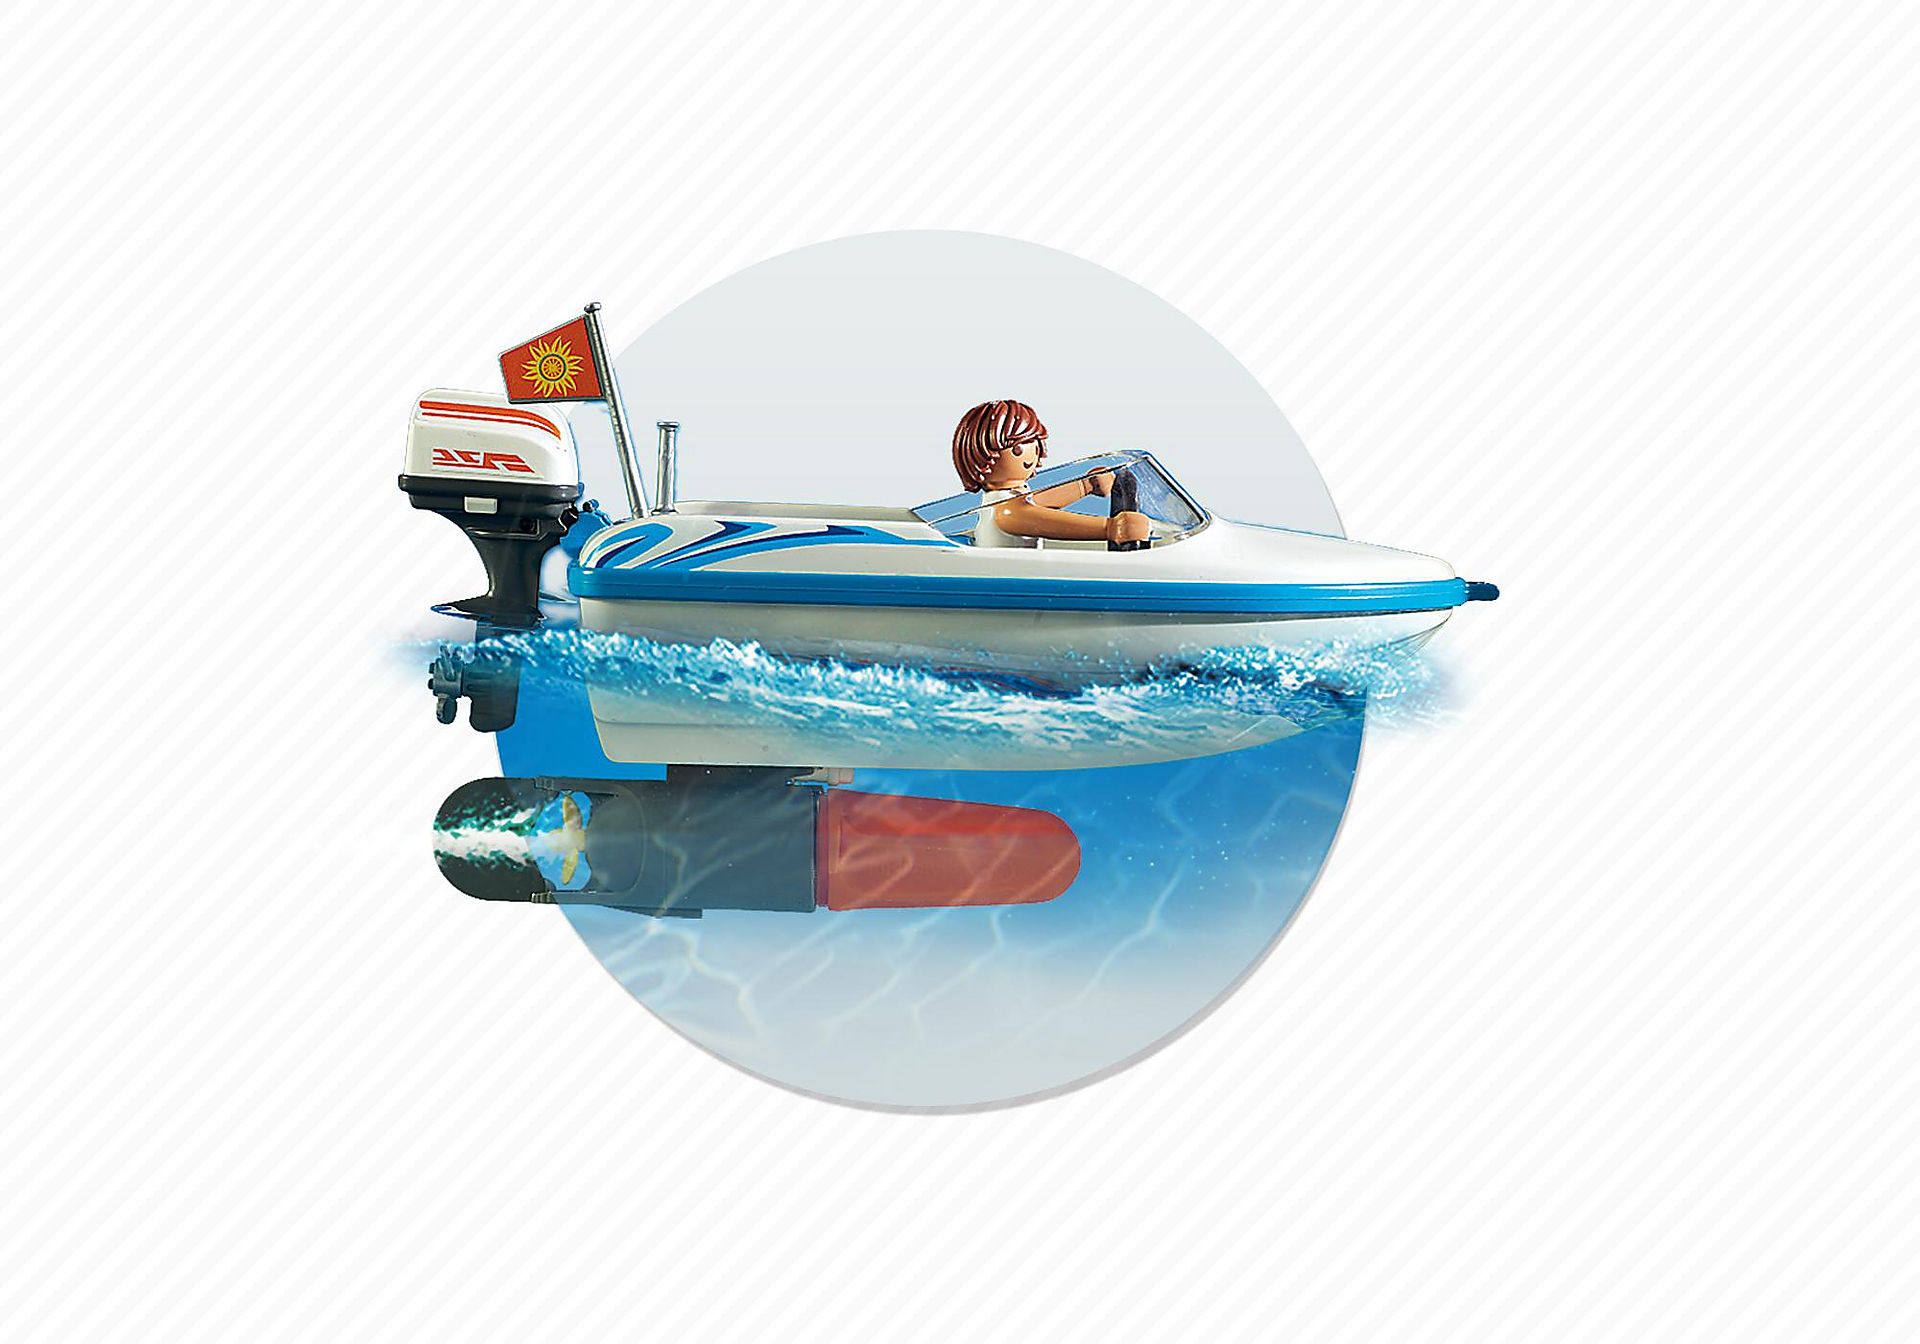 6864 Surfer Pickup with Speedboat zoom image8